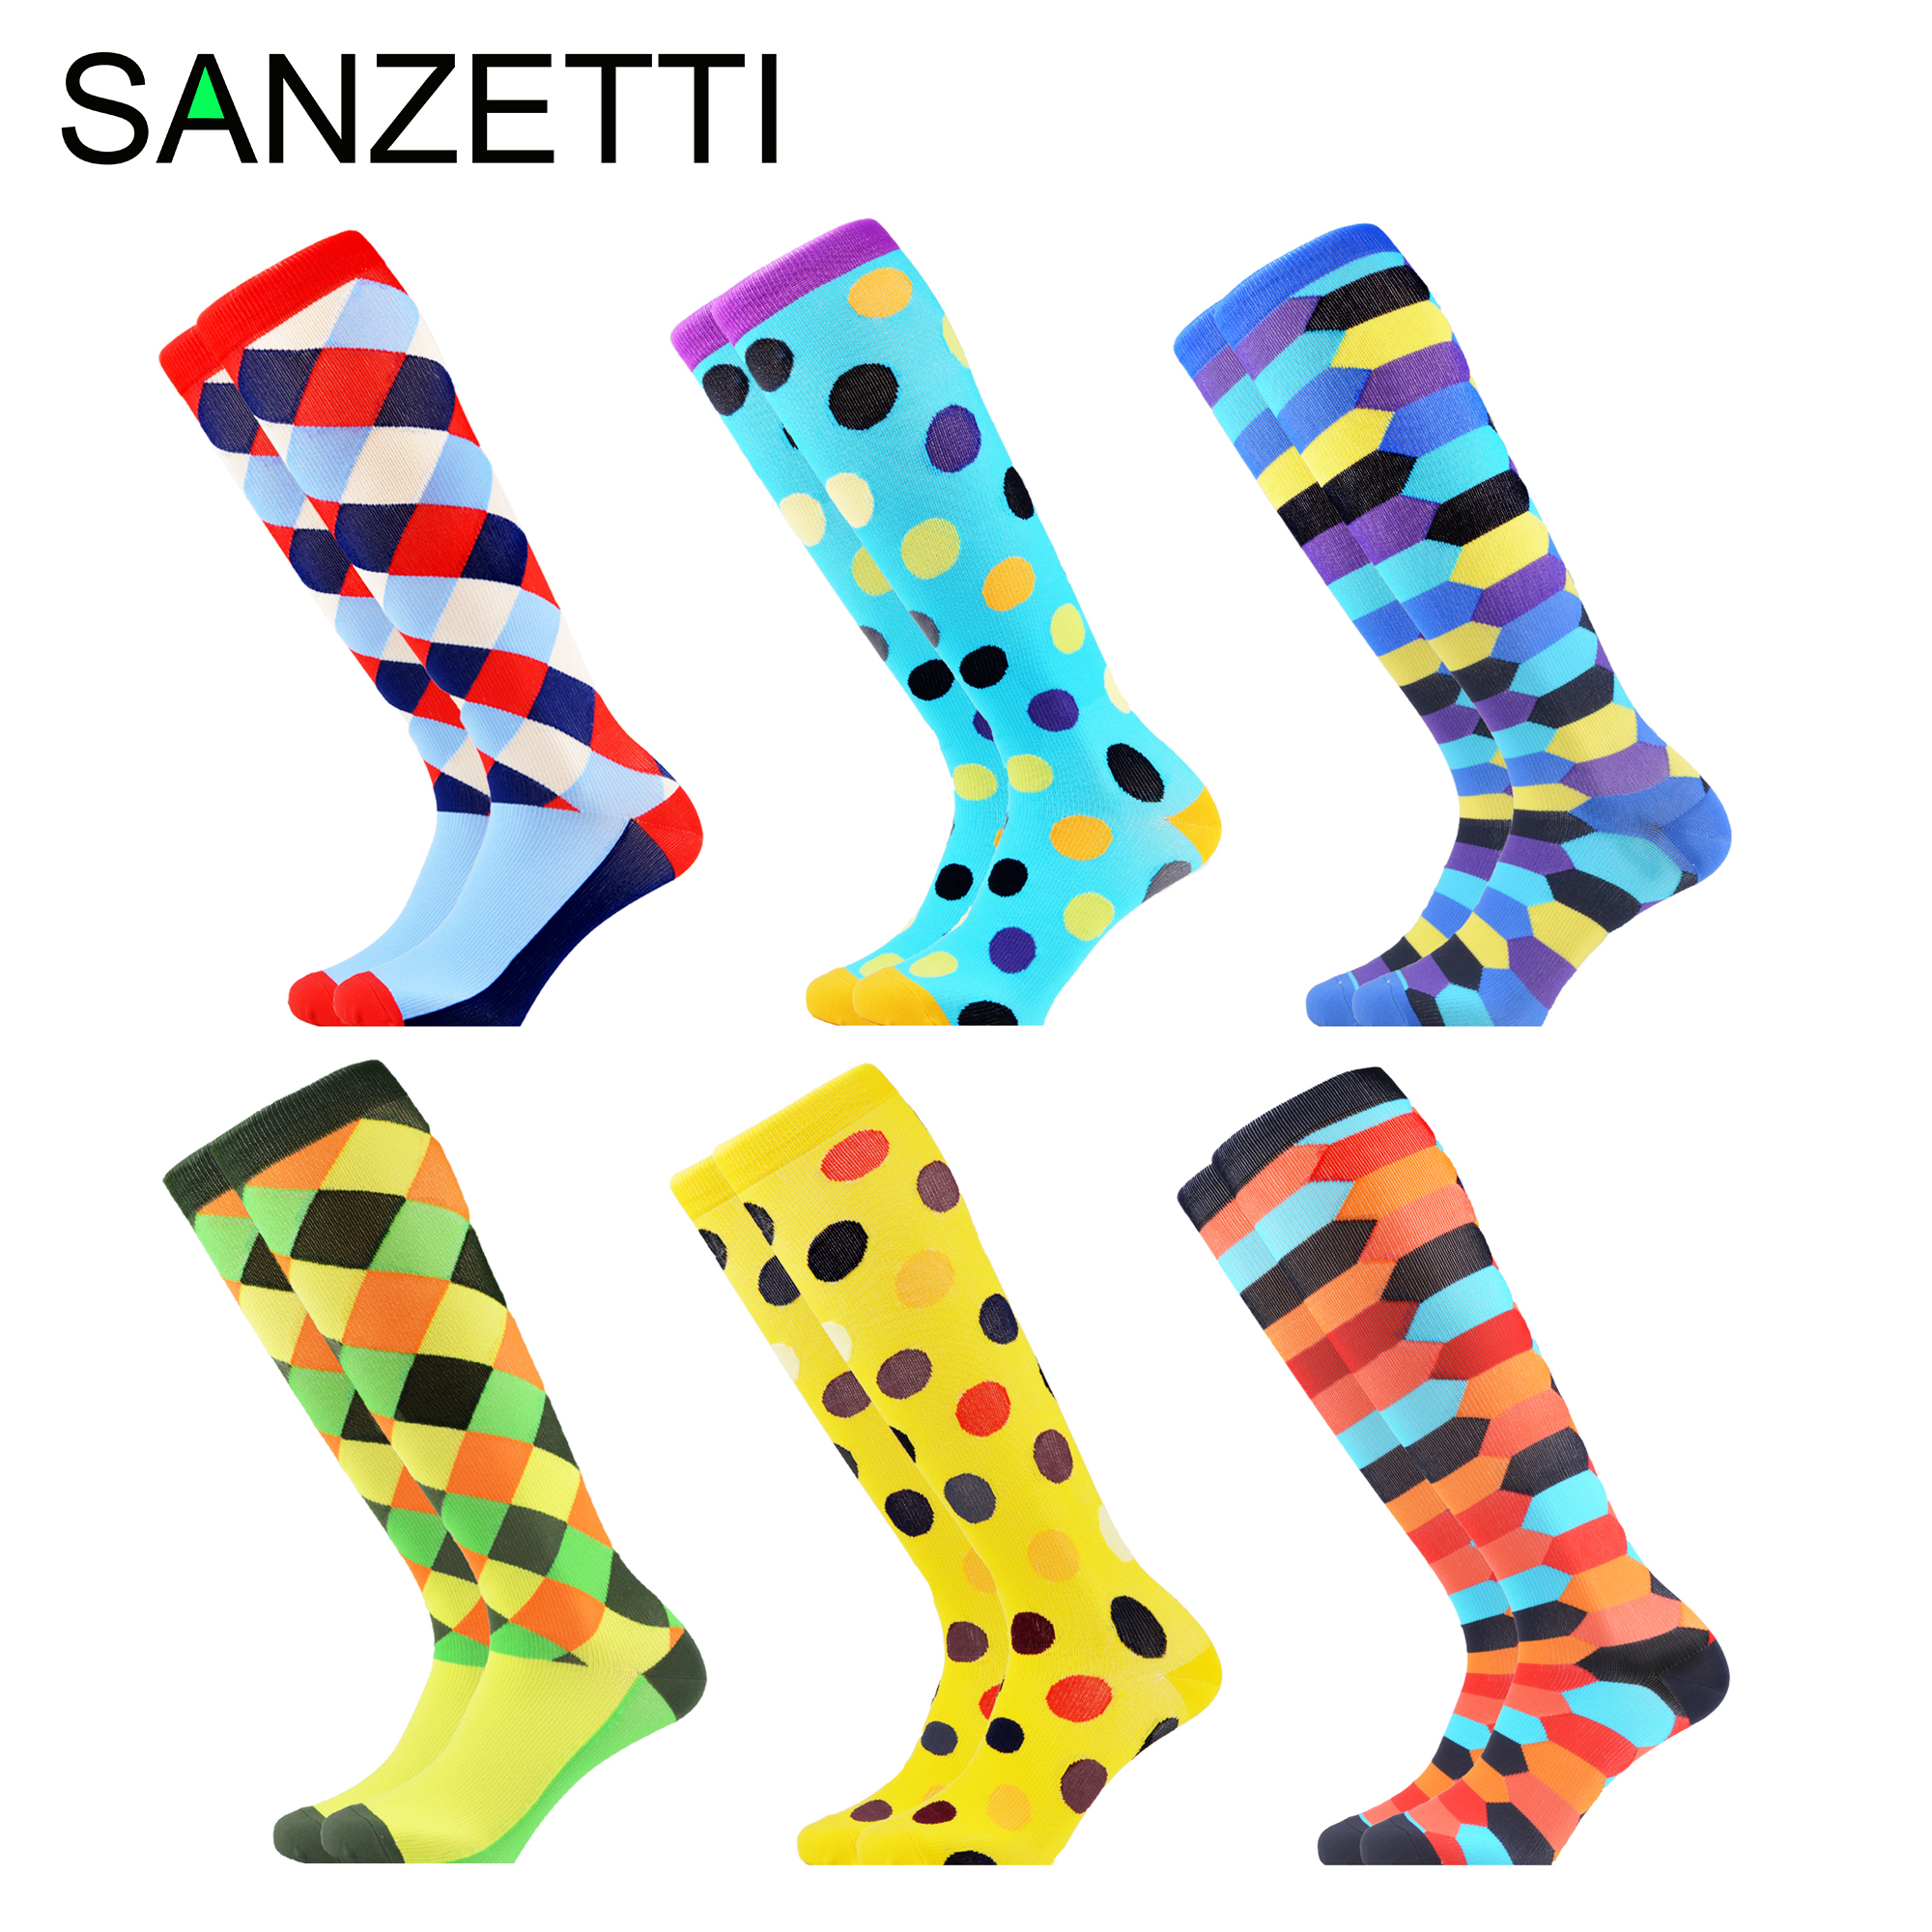 SANZETTI 6 Pairs/Lot Women Colorful Below Knee Design Leg Support Stretch Cotton Compression Socks Dot Anti-Fatigue Happy Socks